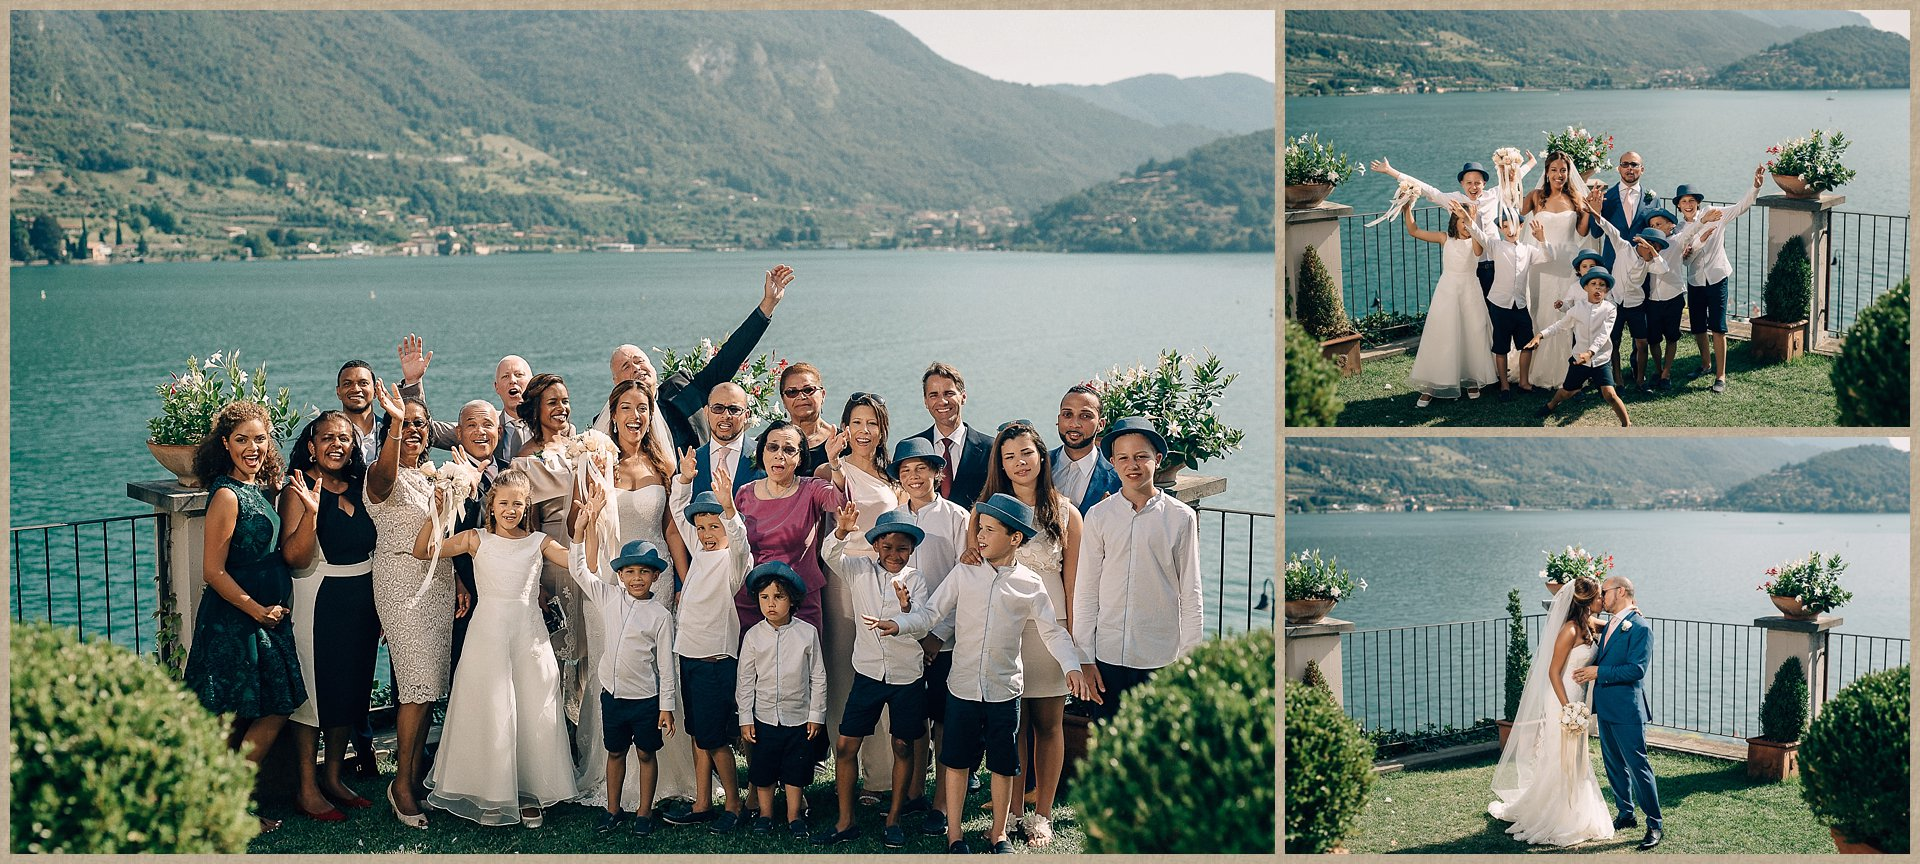 castello-oldofredi-wedding-lake-iseo-sarahferrara-070.jpg